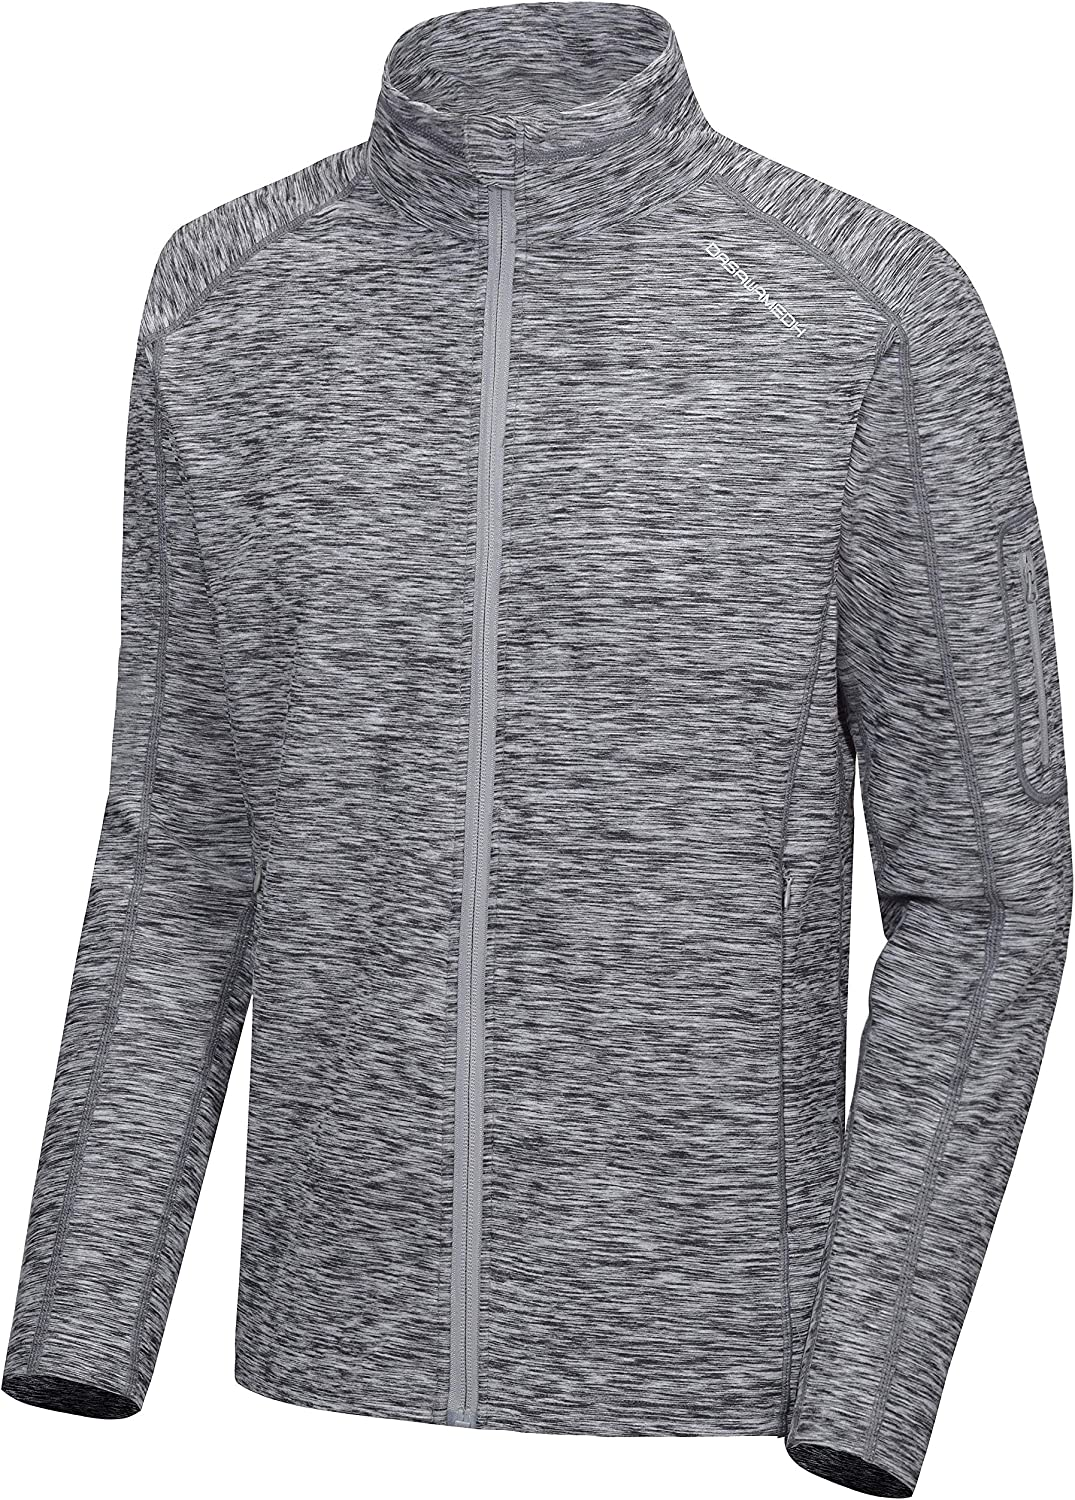 Dasawamedh Men's Running Sport Track Jacket Full Zip Workout Athletic Fitness Jackets for Training